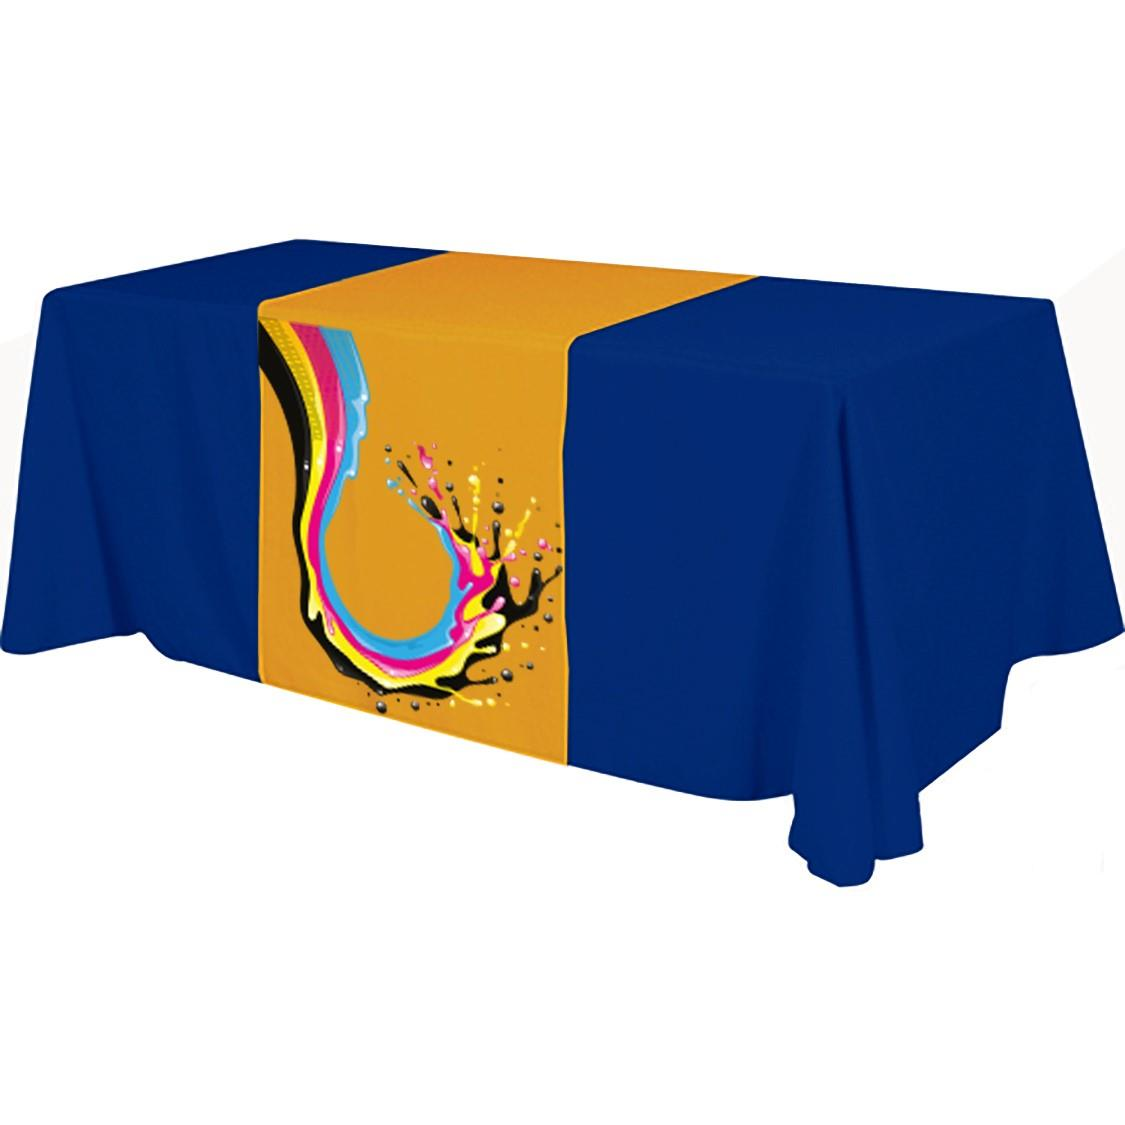 Full Print Branded Table Runner